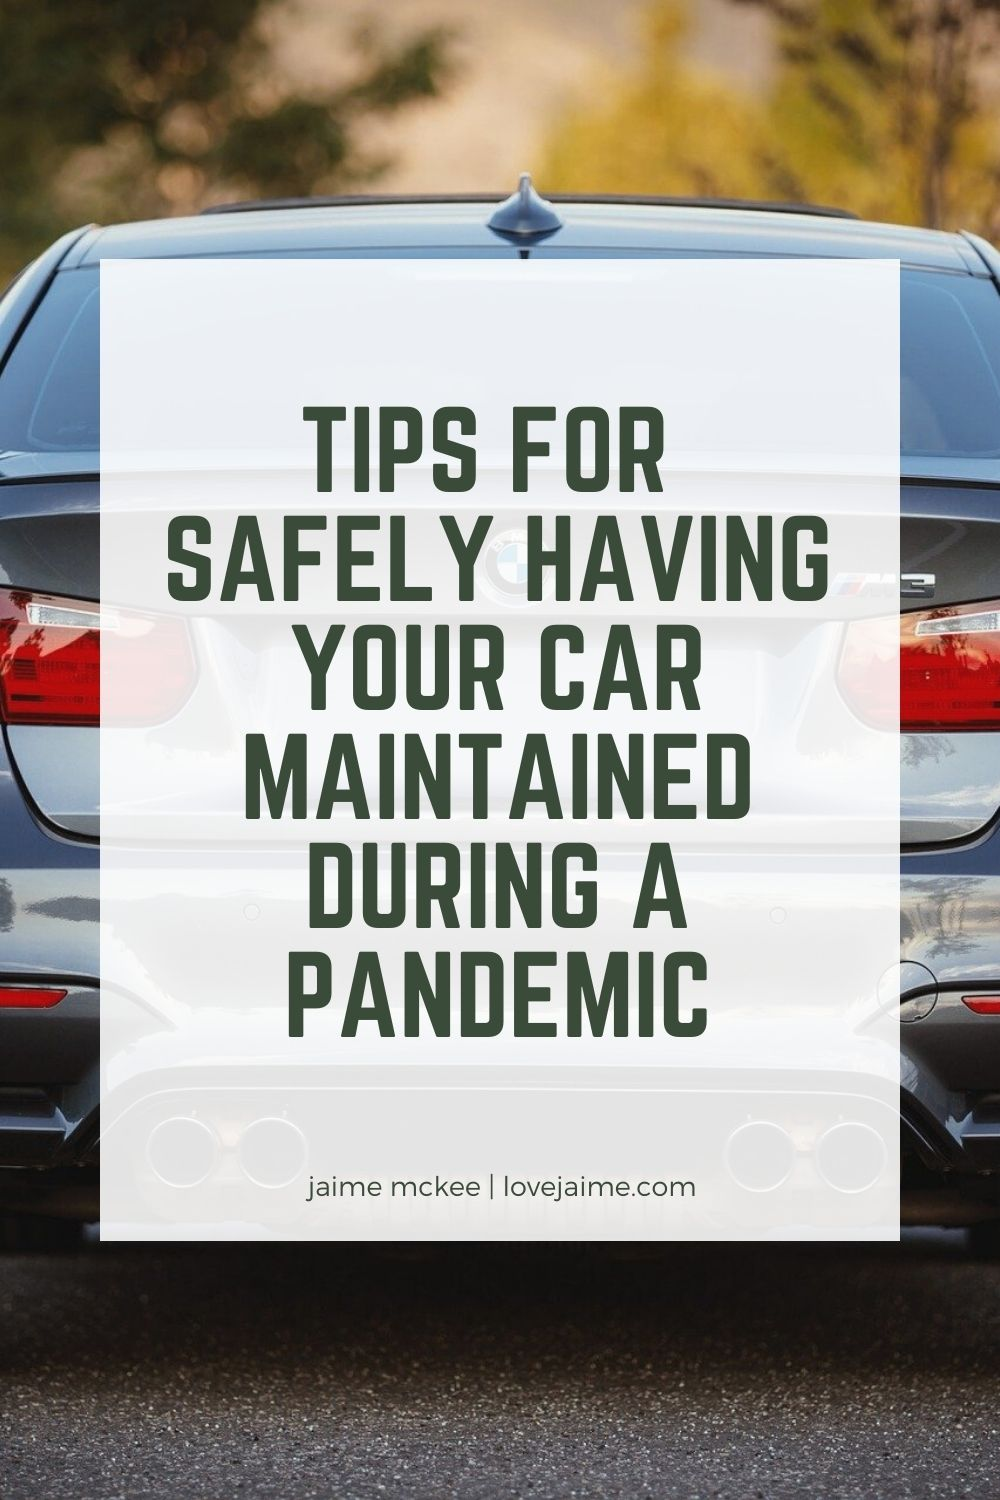 Tips for getting your car serviced during a pandemic.